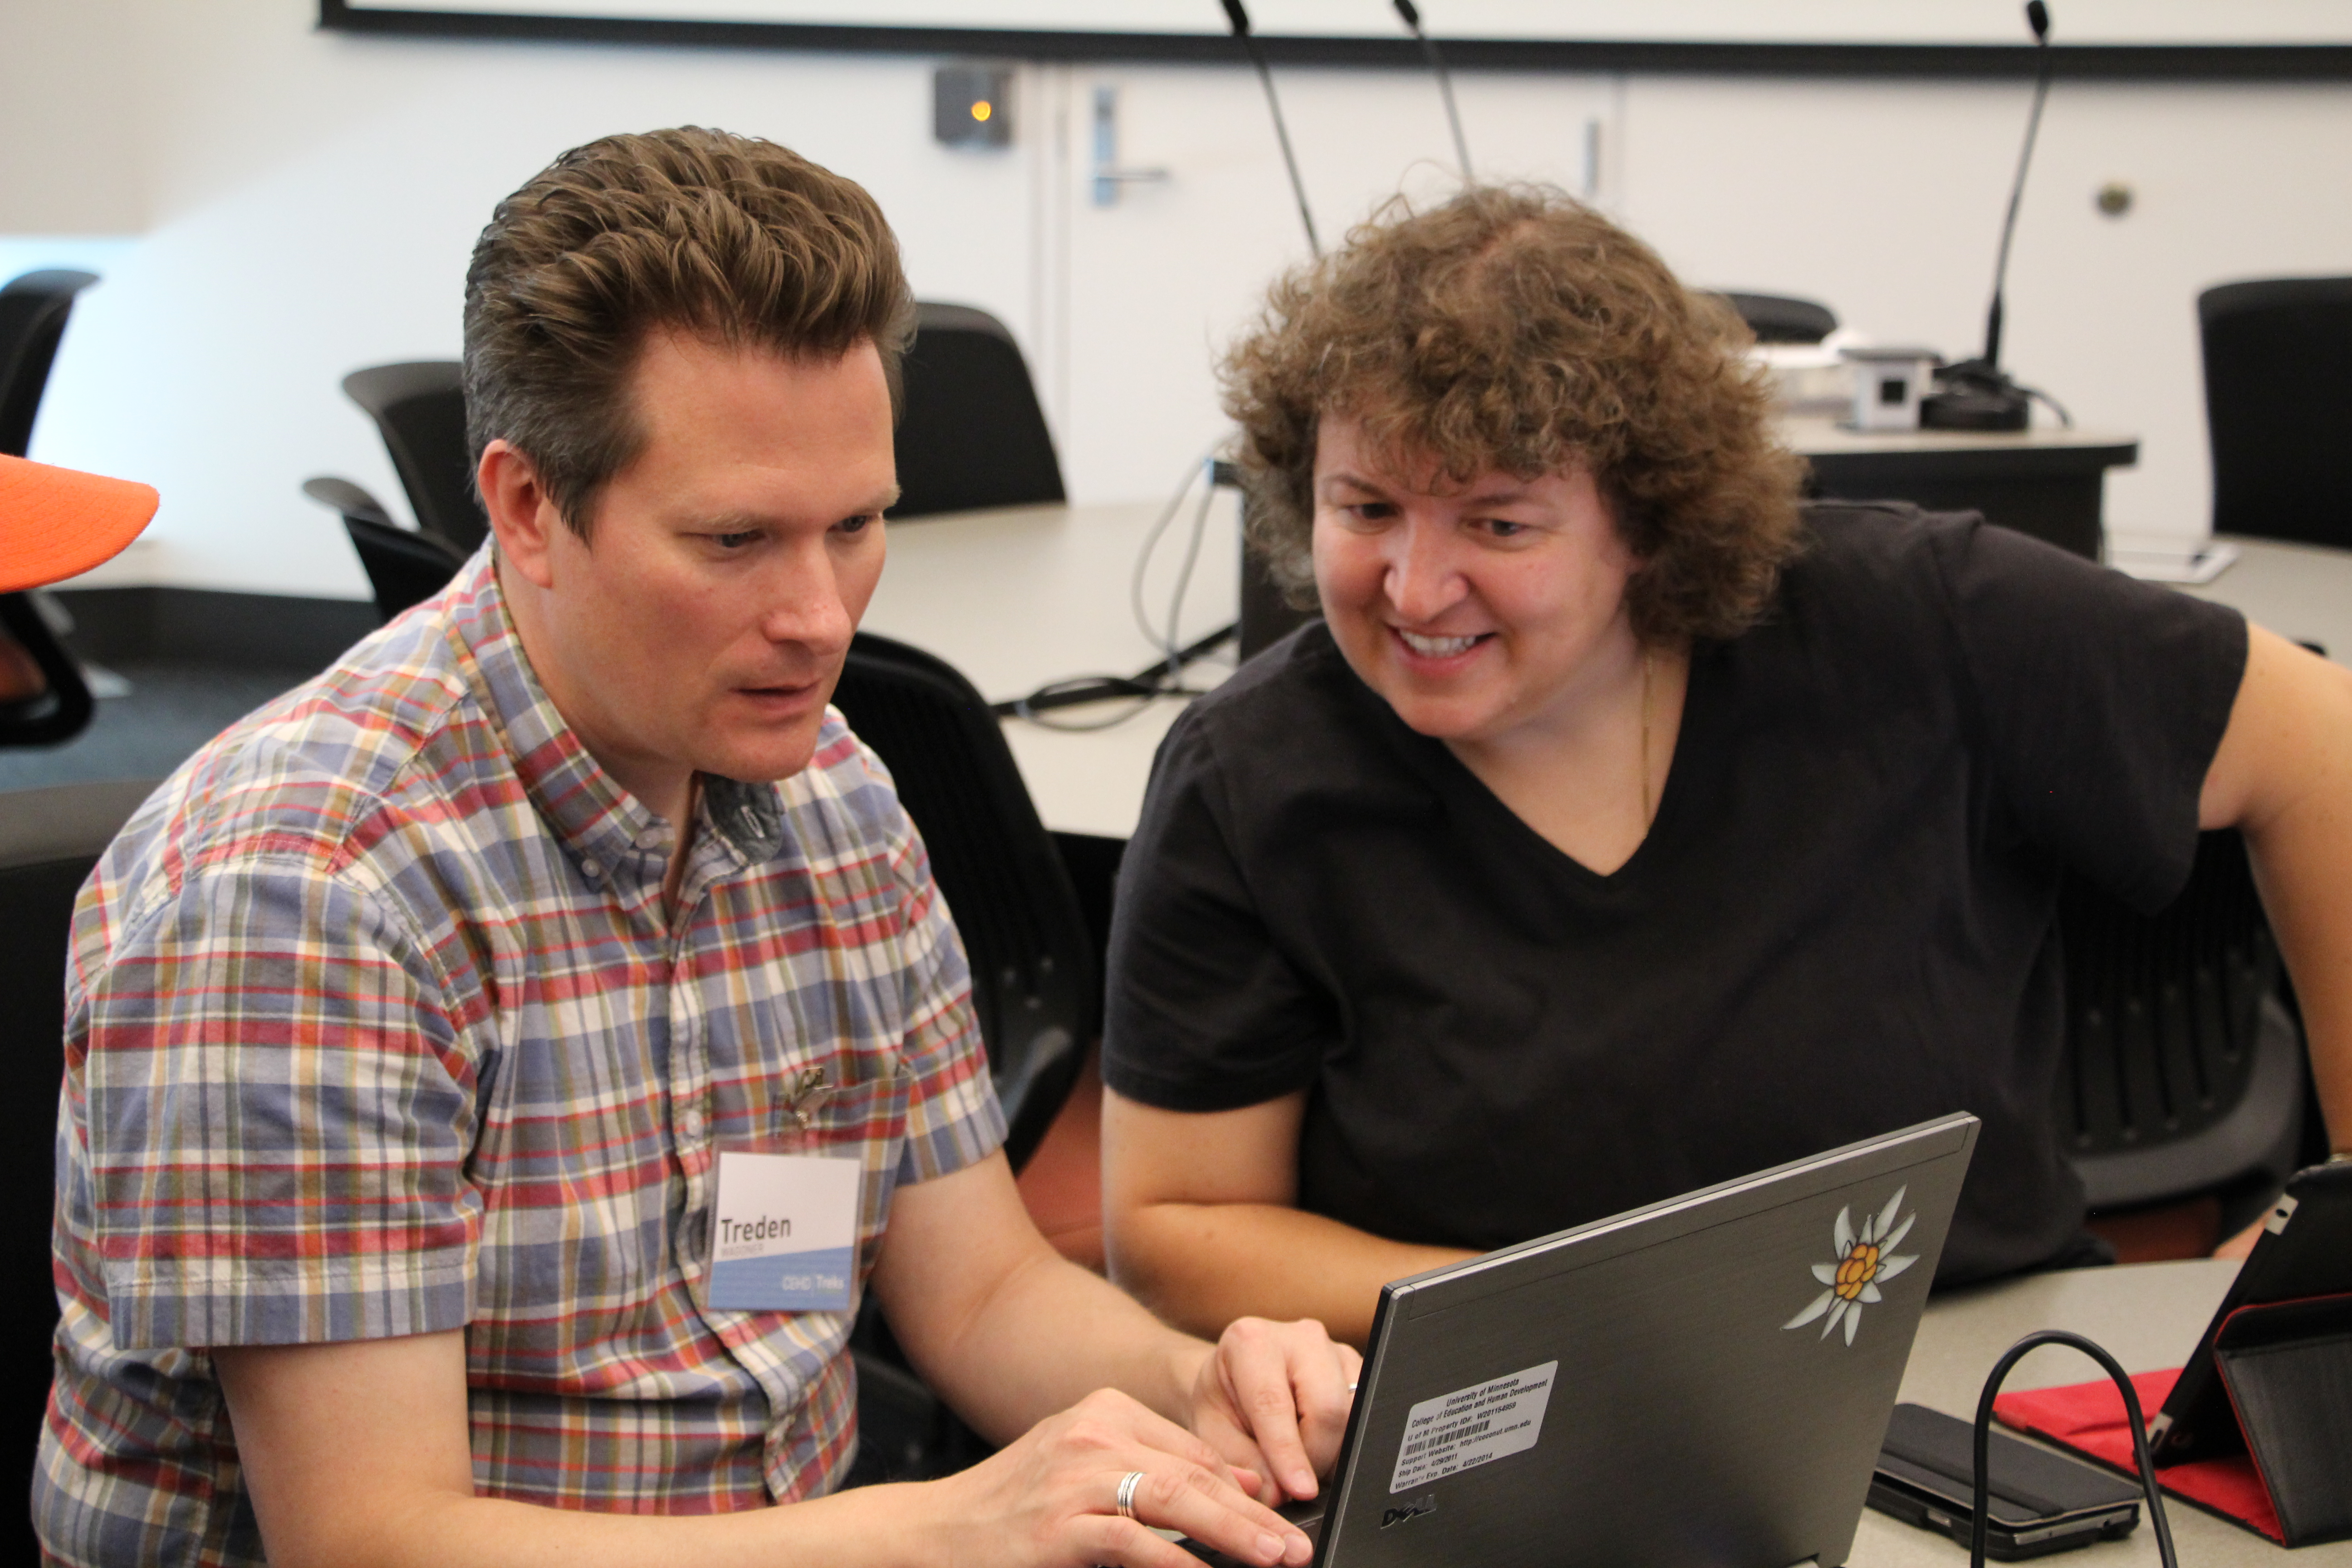 Treks instructor and participant discuss options during open lab activity.